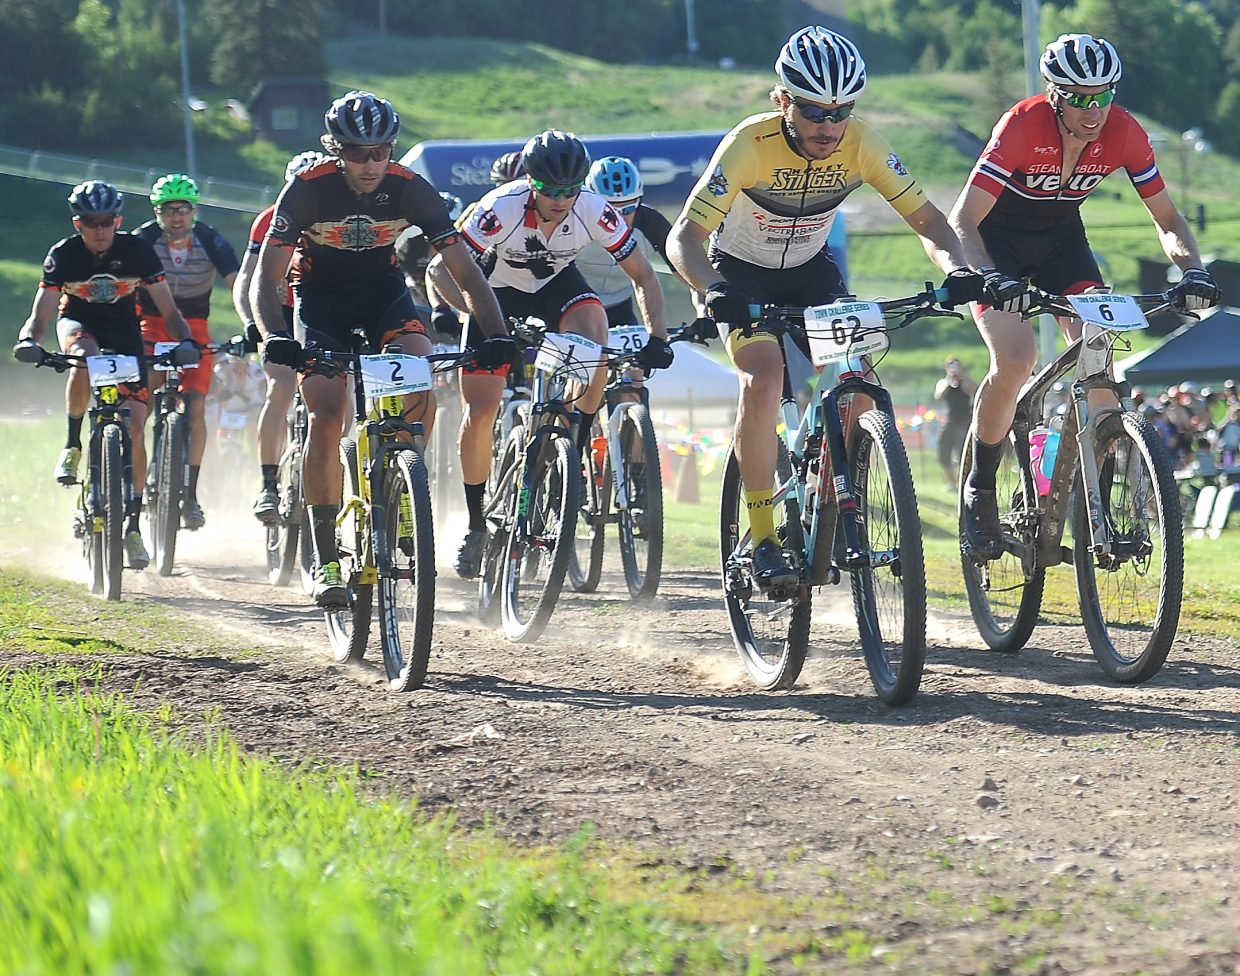 Riders take off from the starting line at a Town Challenge Mountain Bike series race earlier this summer at Howelsen Hill. The series returns Wednesday for the Howelsen Hammer XC race with a 5:25 p.m. start. Children's races will be up first, followed by the adults starting at 6:10 p.m. A 12.45-mile course awaits those in the top divisions — the open, expert and single speed classes — while the sport and youth 16-18 classes will tackle 9.24 miles of trail.